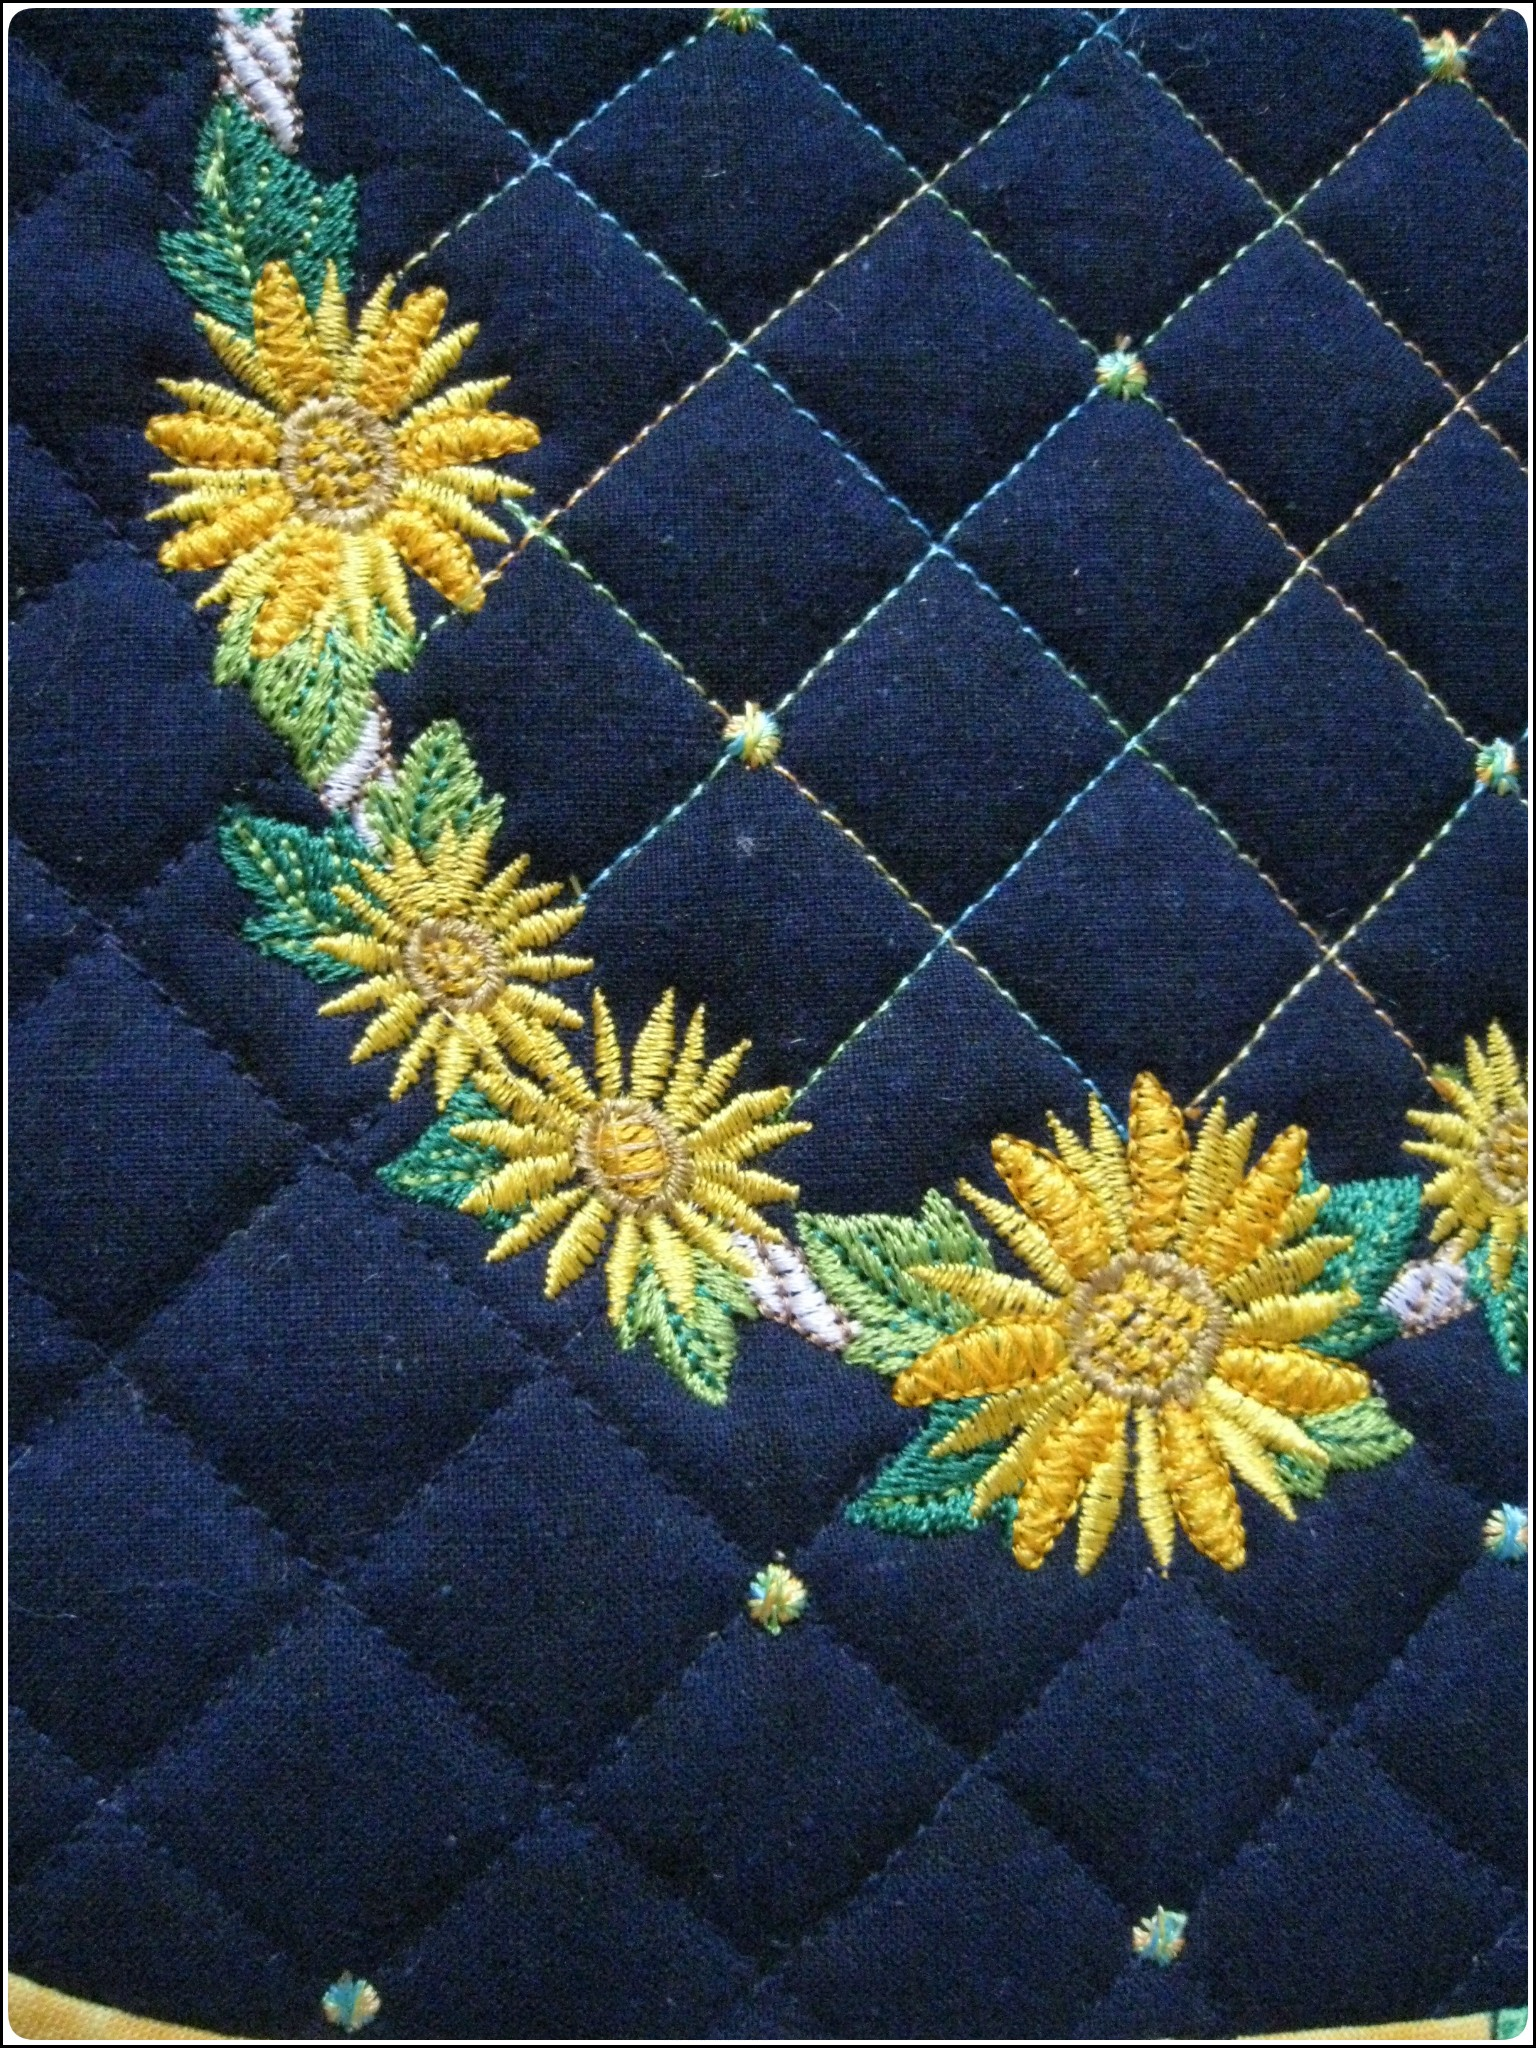 embroidery_1_621.jpg